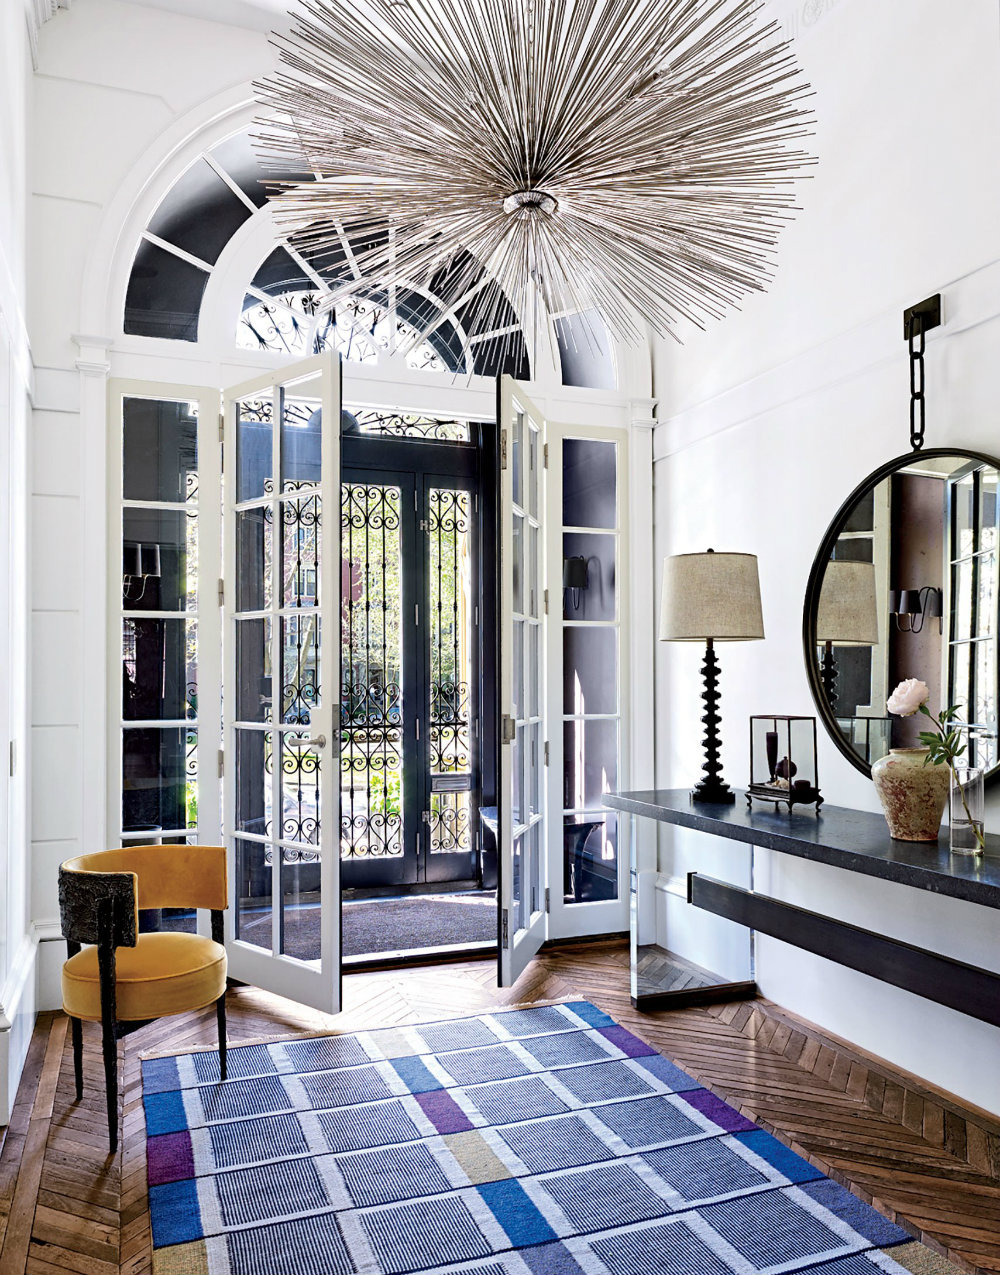 7 Elegant Entryways for the Home of Your Dreams Trends at Maison et Objet Paris 2019 Interior Design Trends at Maison et Objet Paris 2019 7 Elegant Entryways for the Home of Your Dreams 04 Trends at Maison et Objet Paris 2019 Interior Design Trends at Maison et Objet Paris 2019 7 Elegant Entryways for the Home of Your Dreams 04